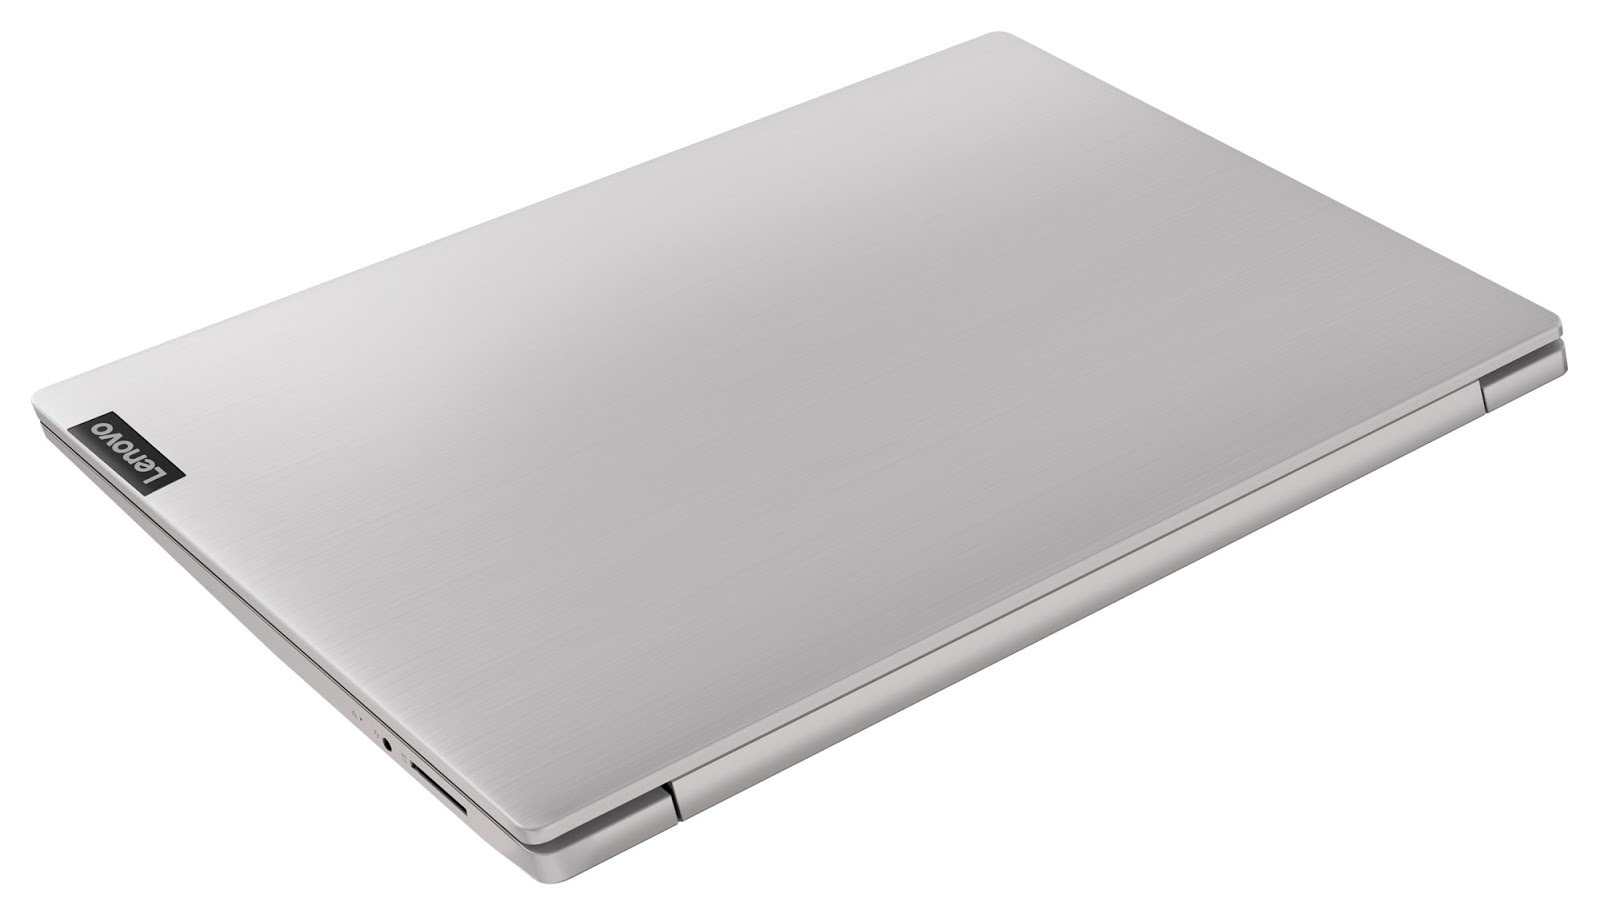 Фото 1. Ноутбук Lenovo ideapad S145-15IGM Platinum Grey (81MX003JRE)